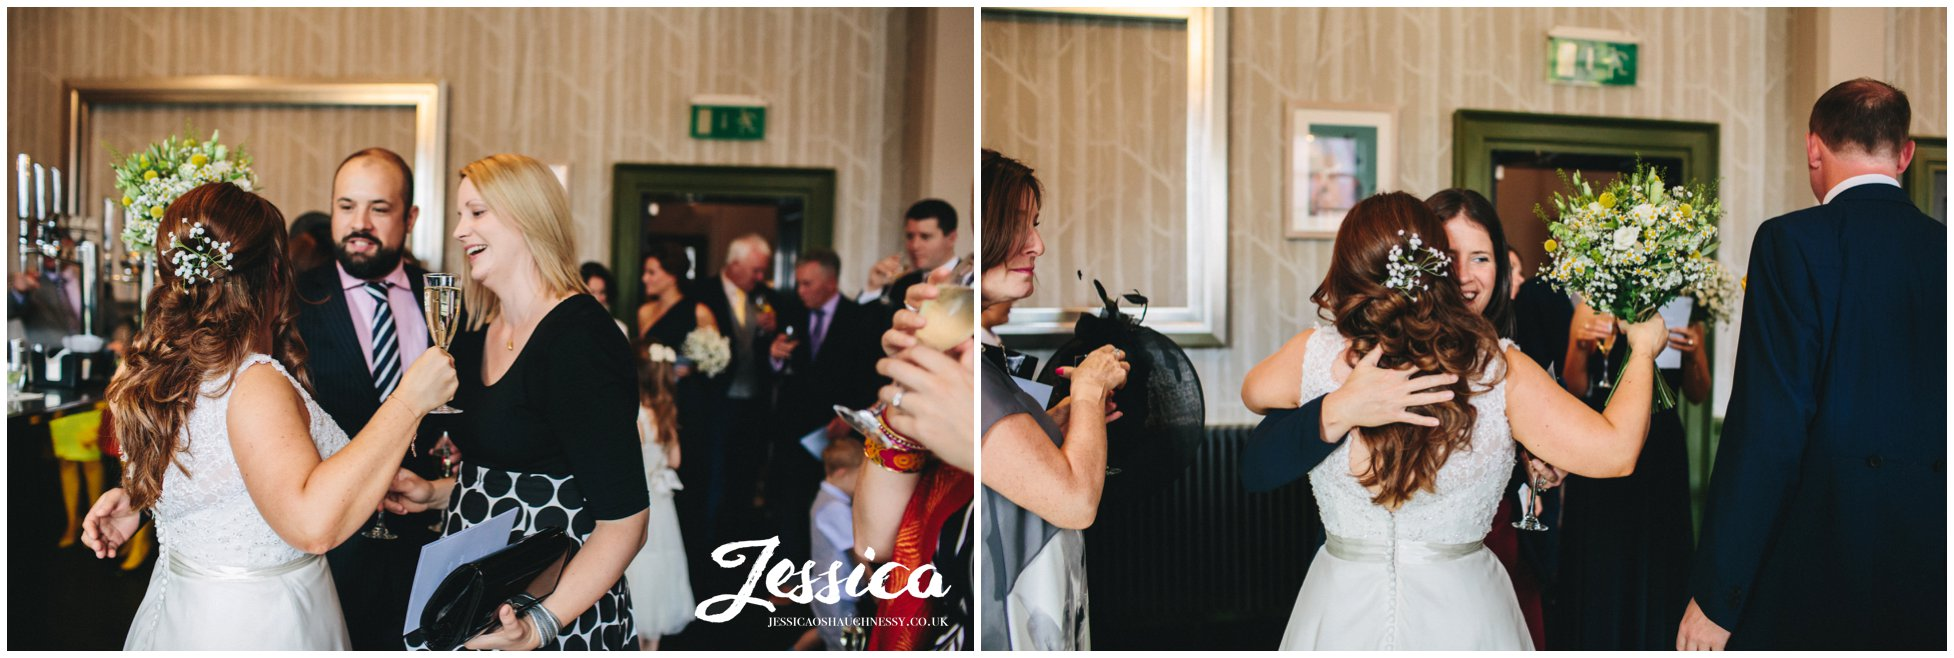 guests congratulate the bride on her chester wedding day